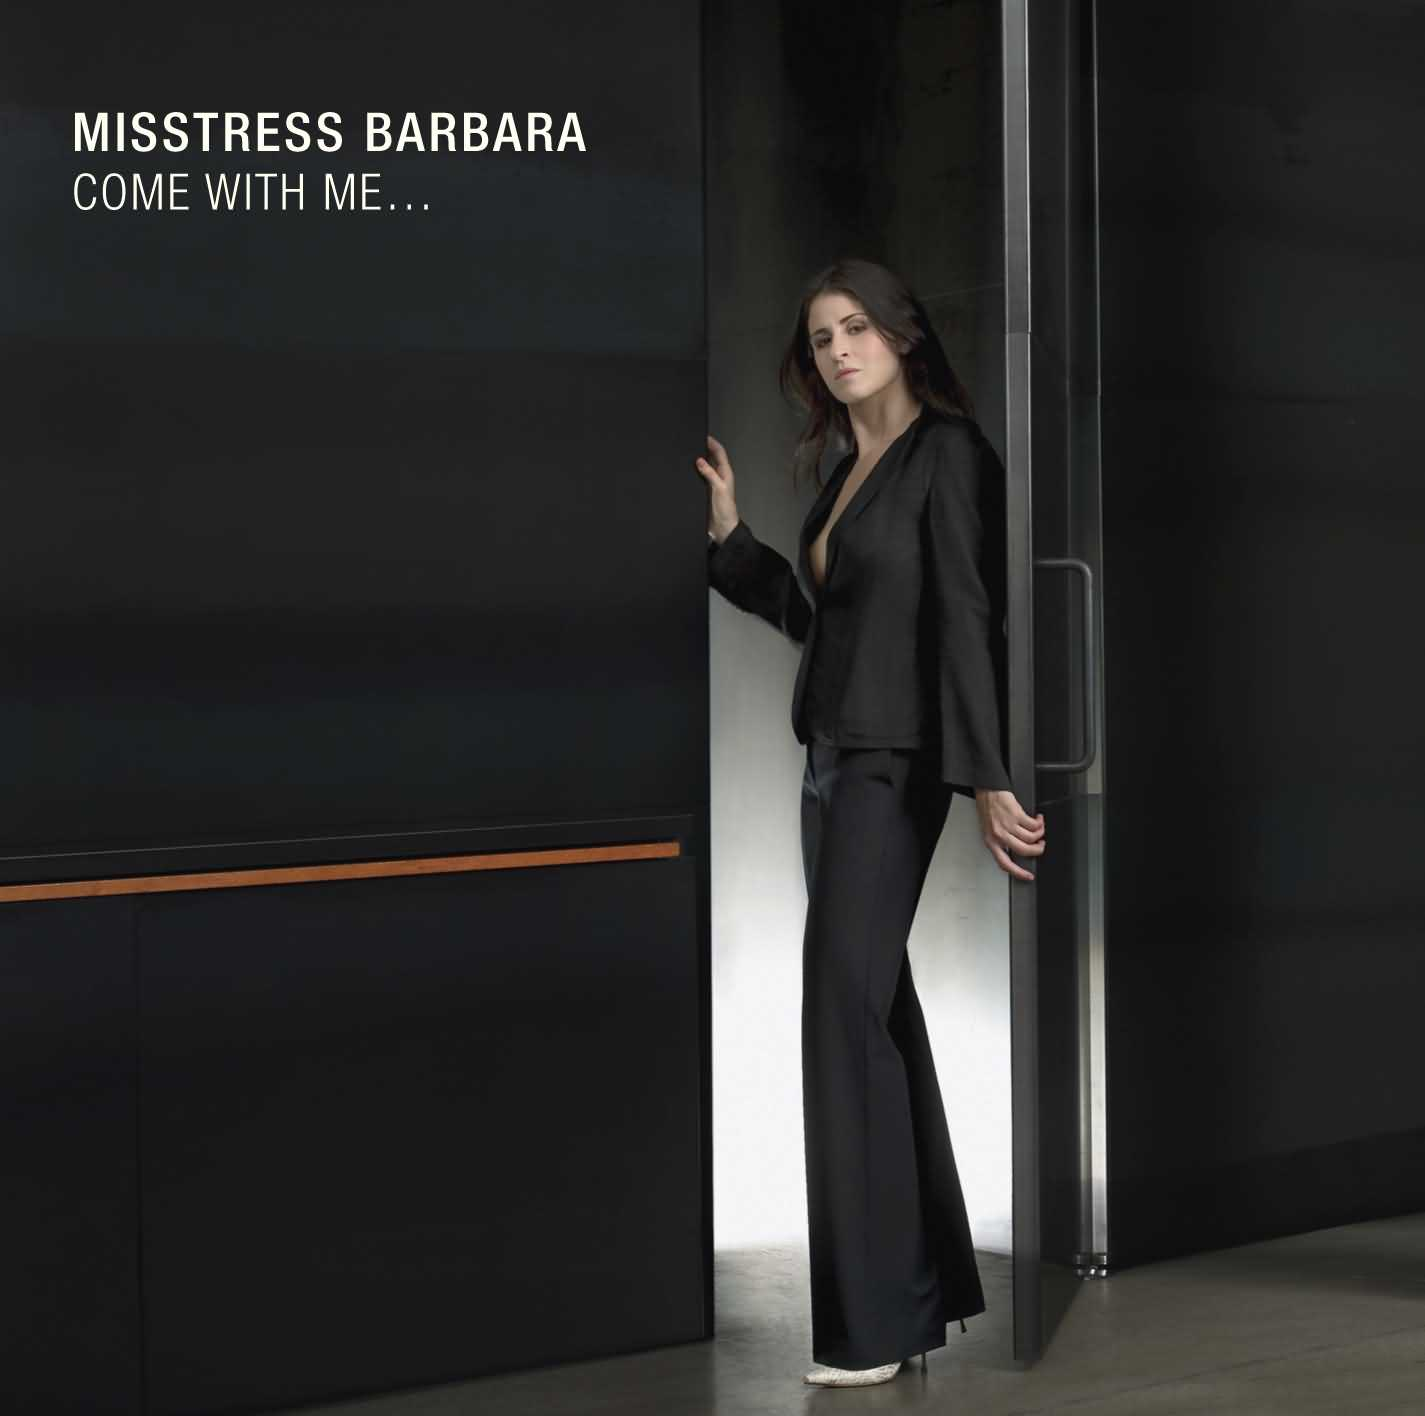 Misstress Barbara - Come With Me...